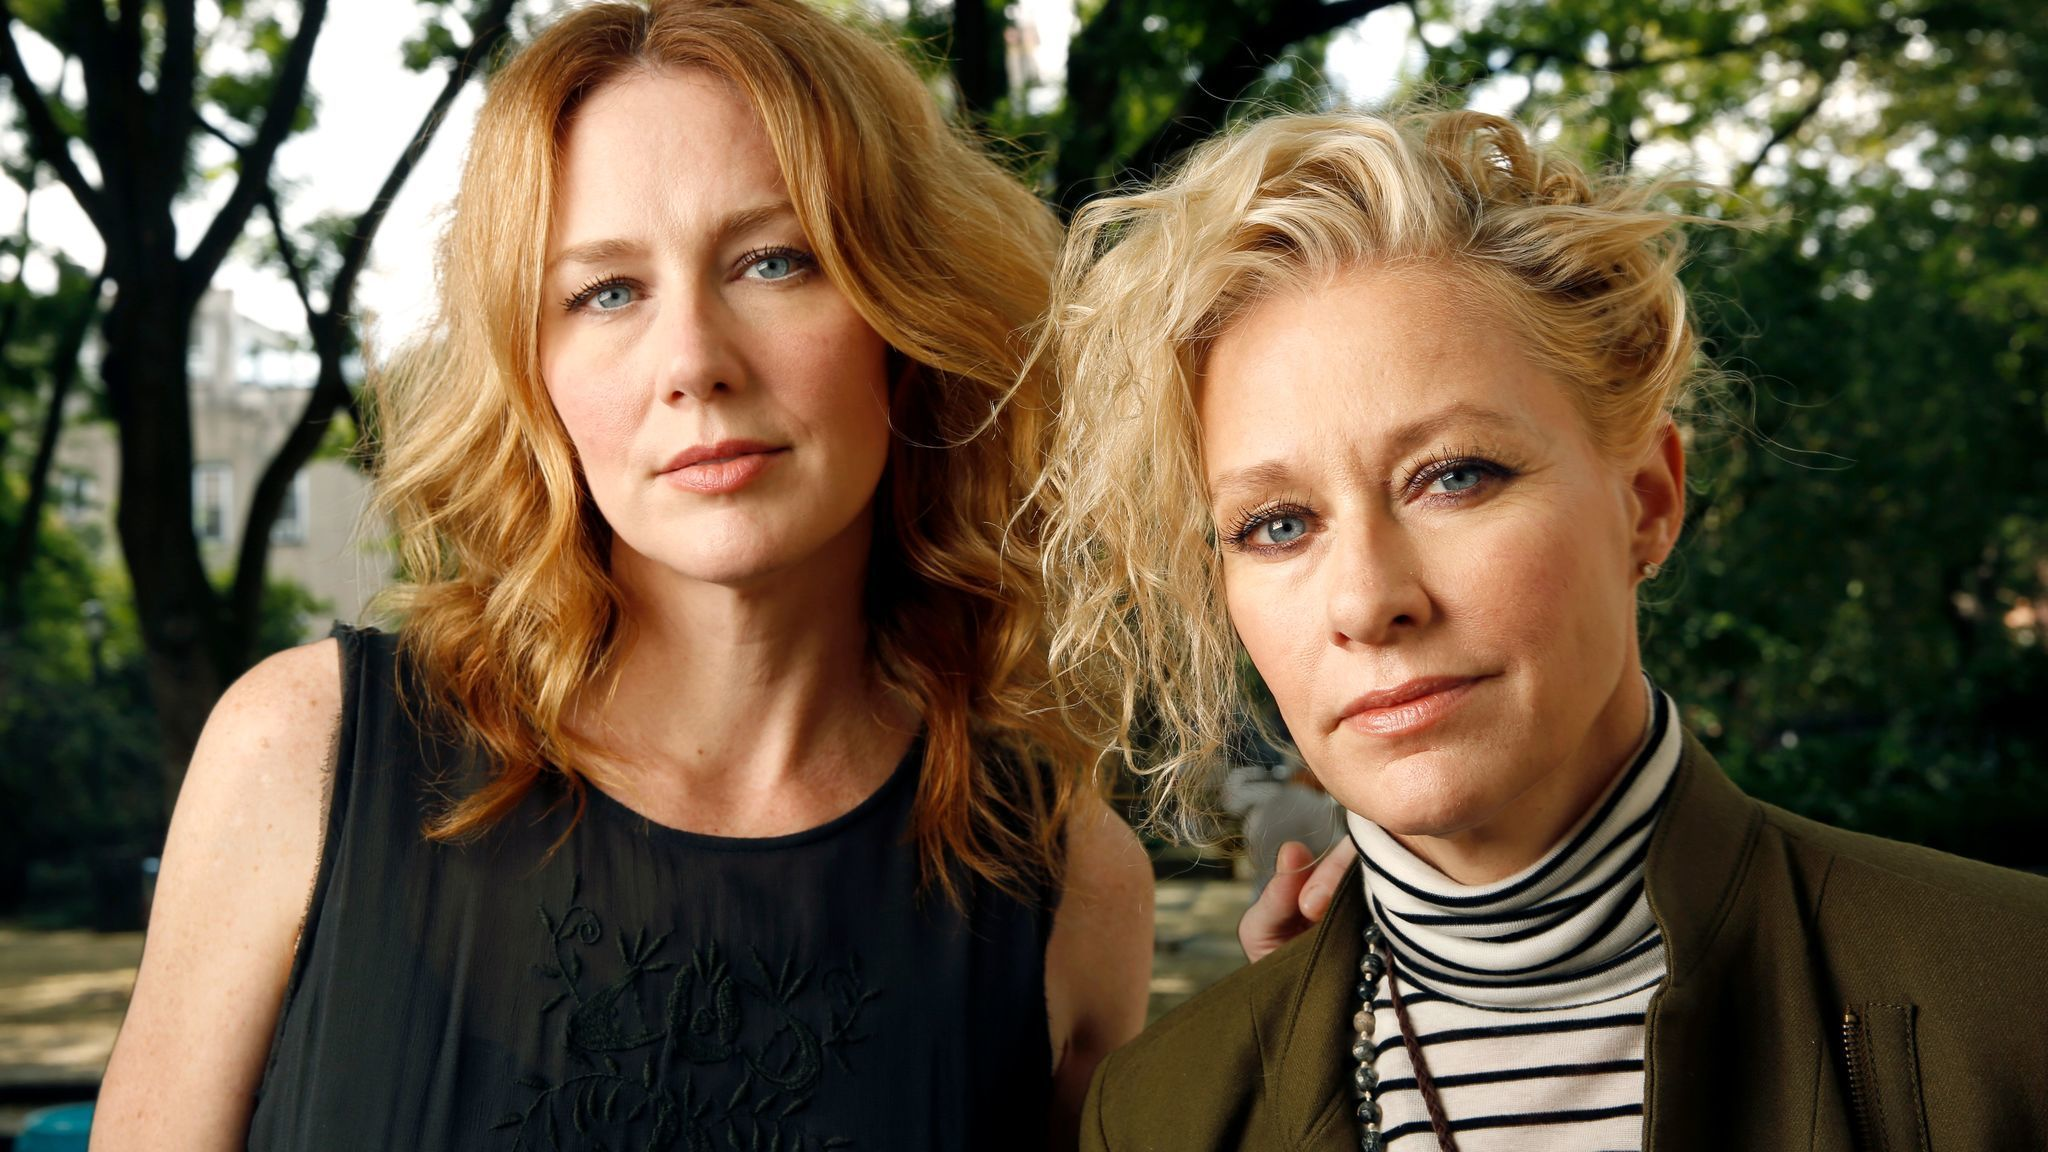 Sisters Shelby Lynne, Allison Moorer team for first duet project, 'Not Dark Yet'